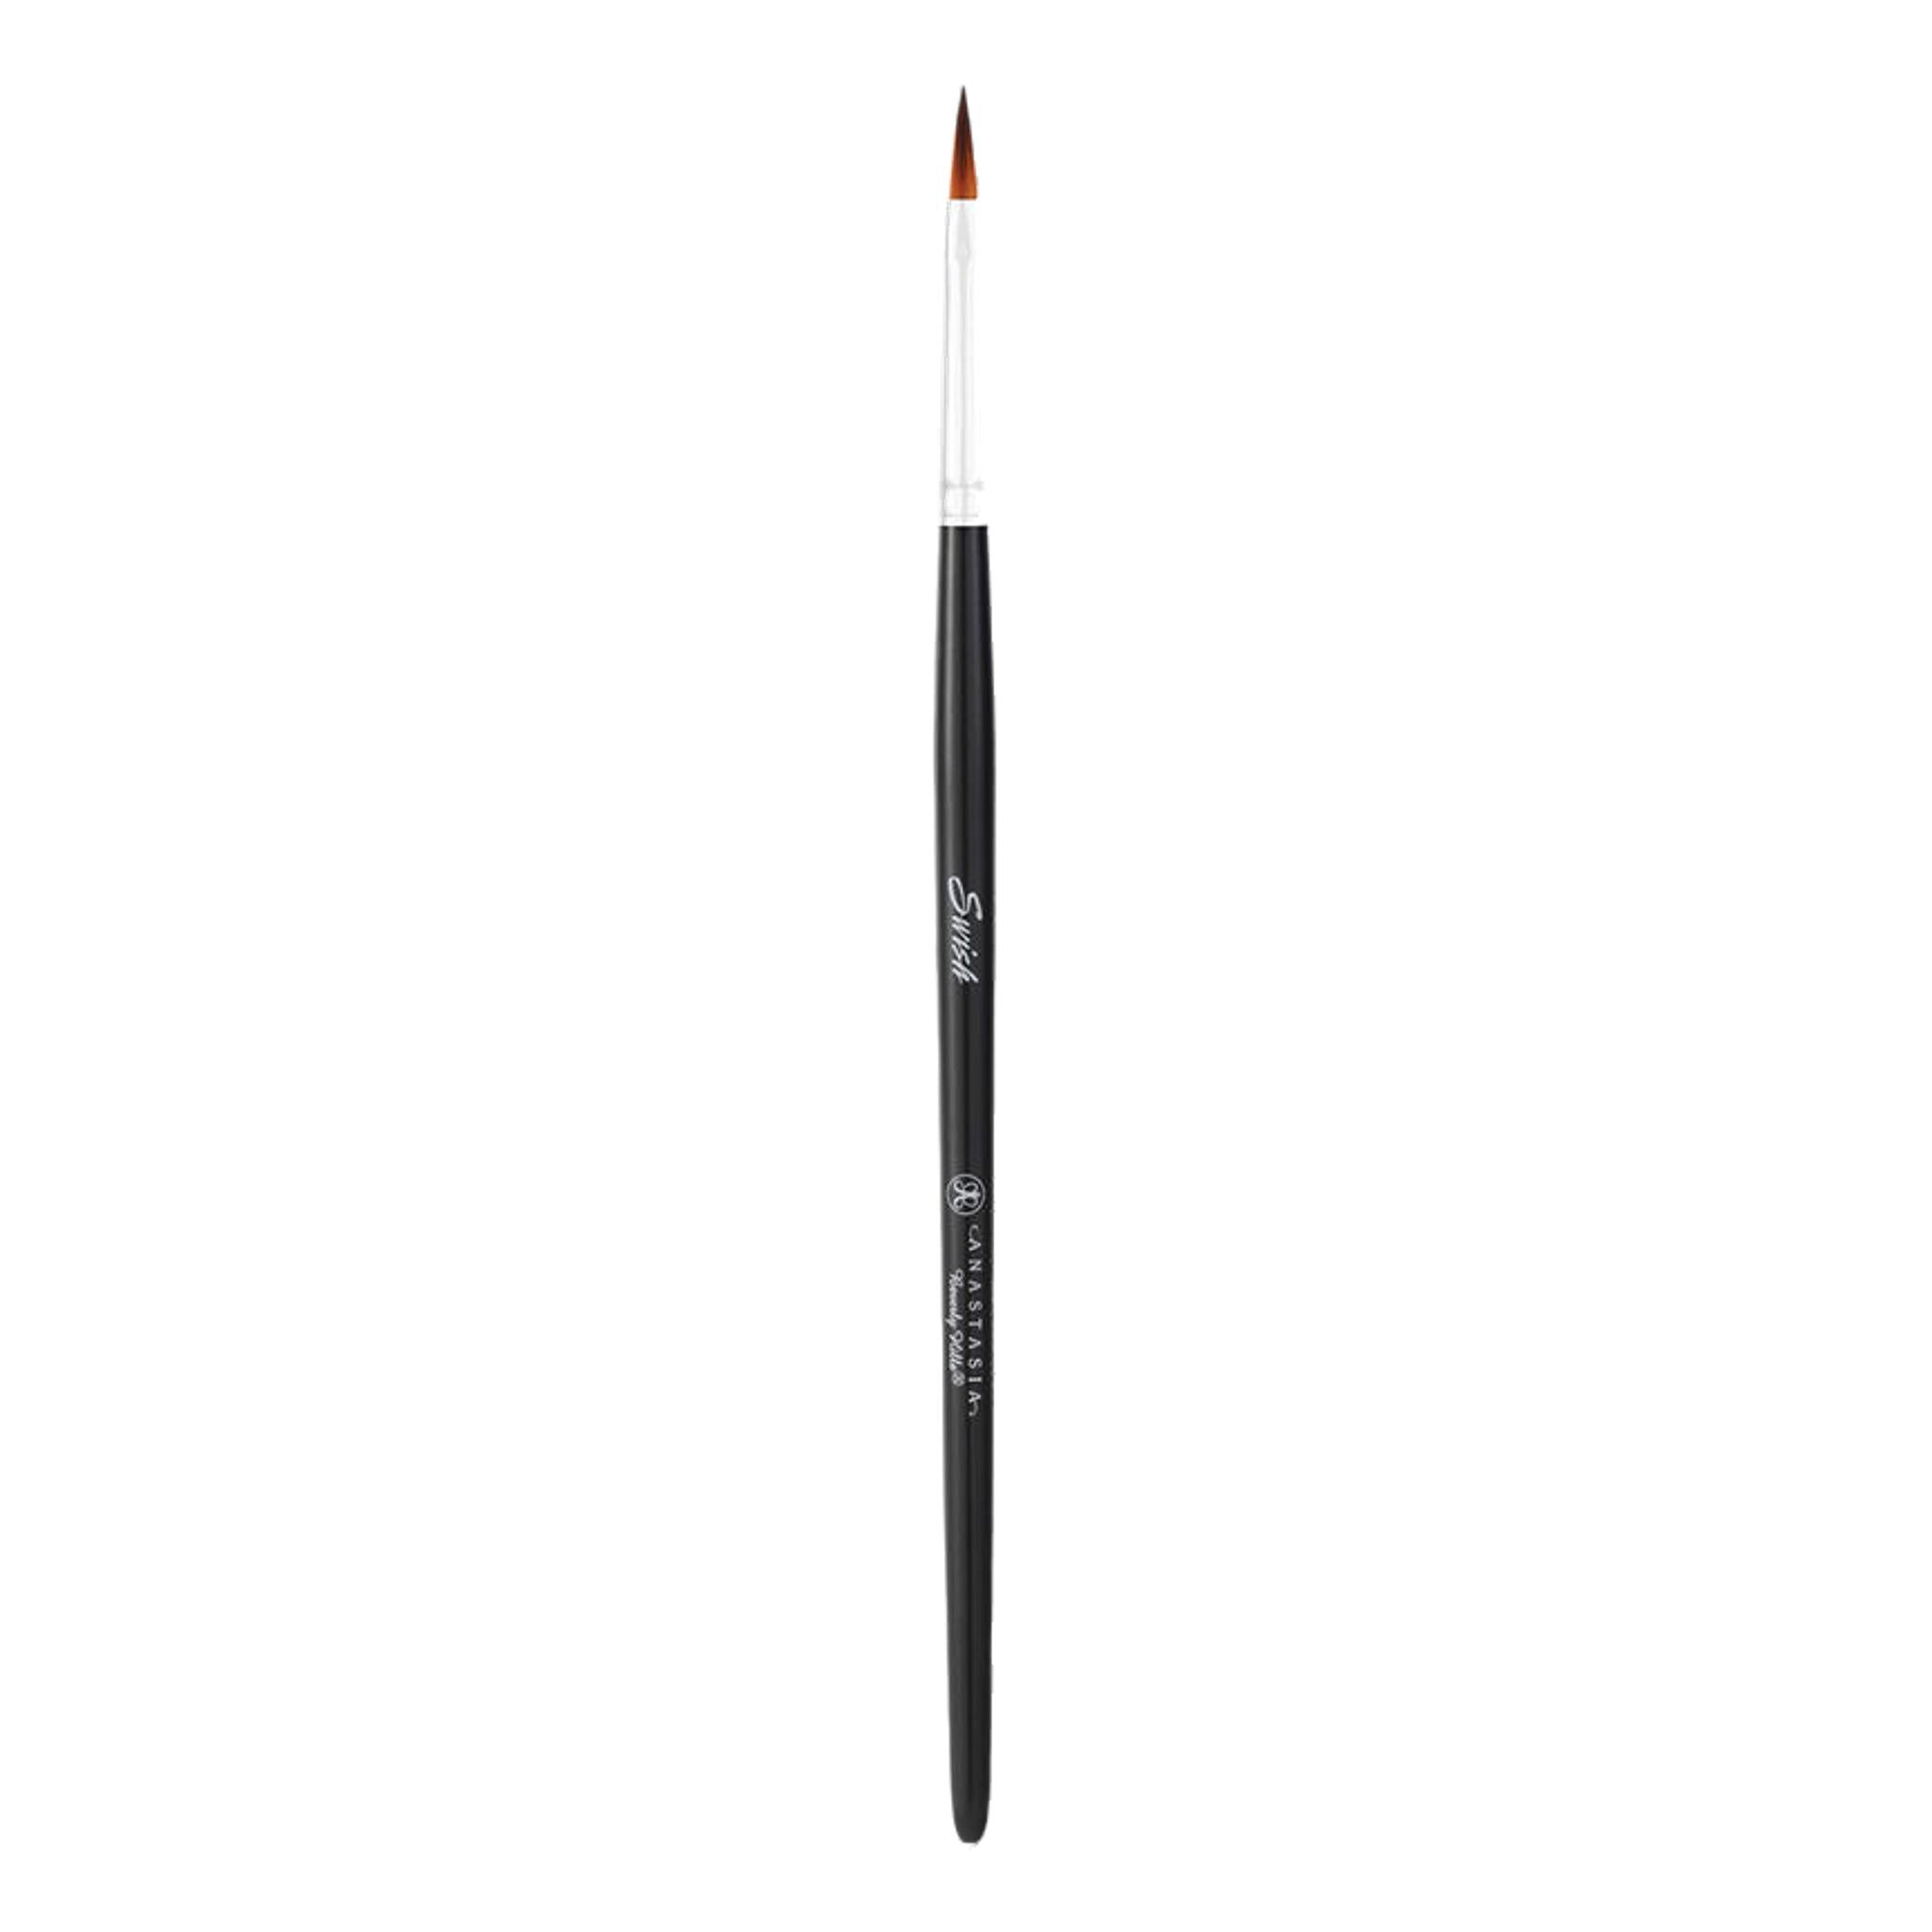 Anastasia Beverly Hills Swish Liner Brush, eyeliner brush, London Loves Beauty